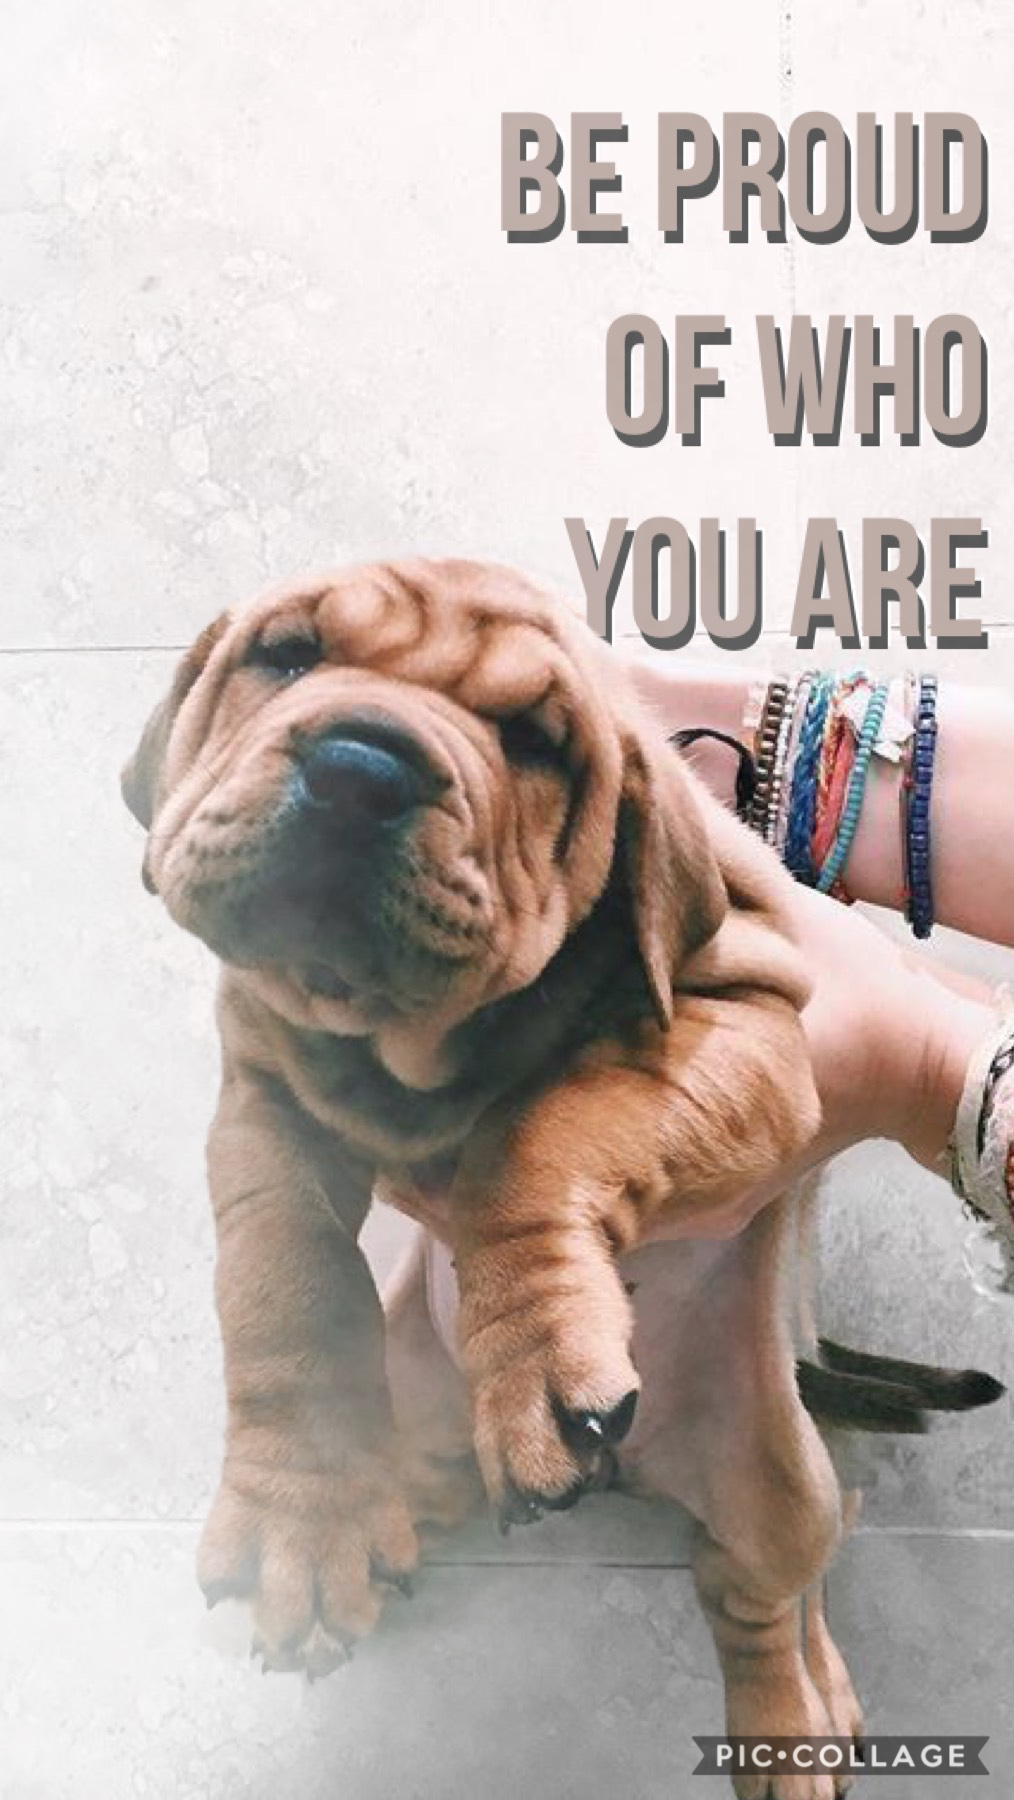 Be proud of who you are! - Bleu💙